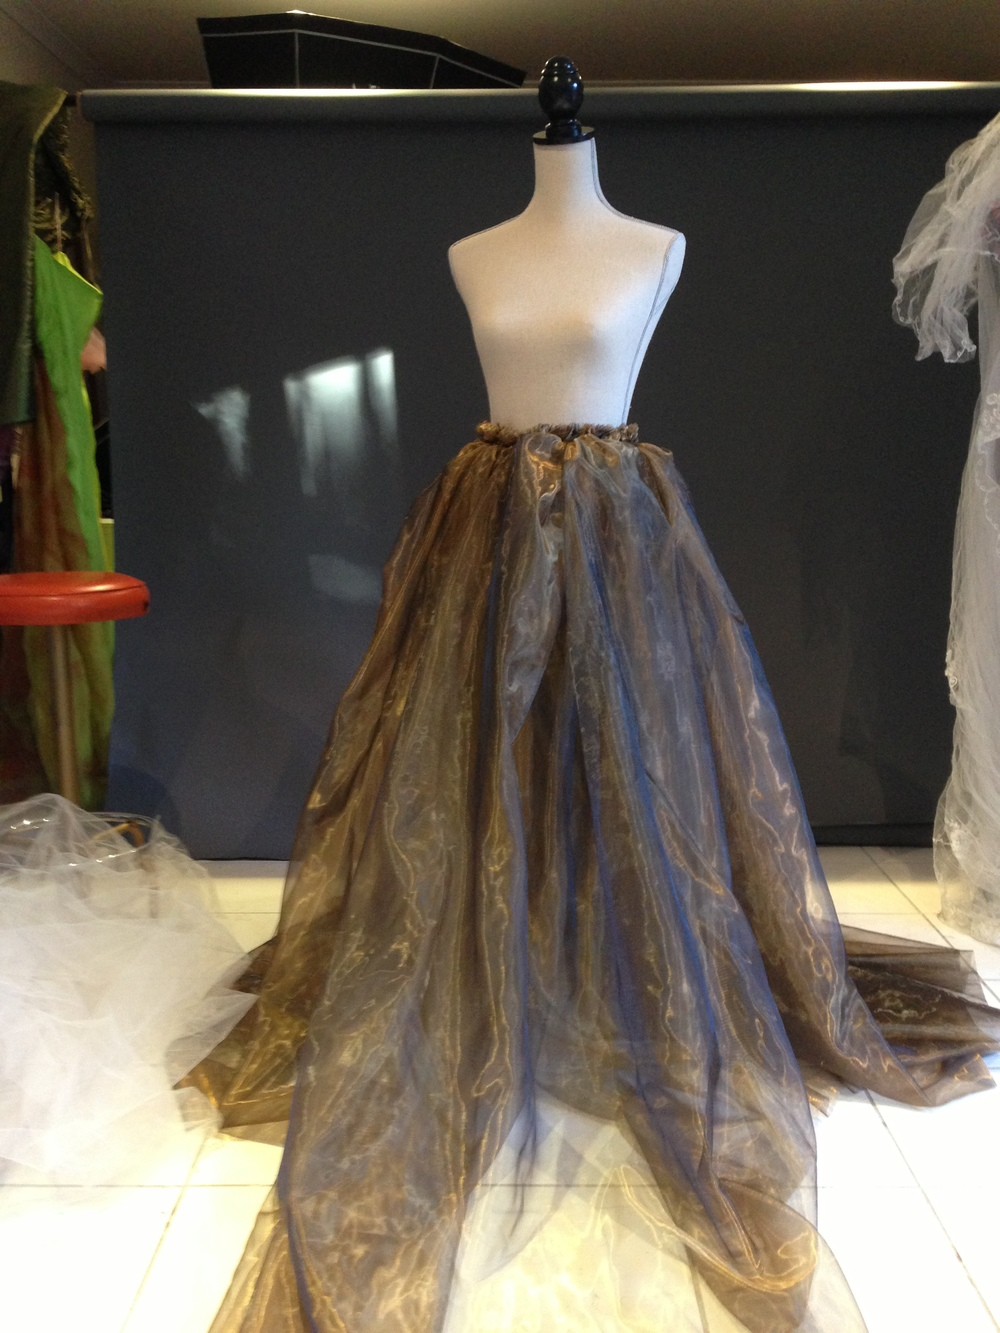 For this image I made the skirt from gold organza.